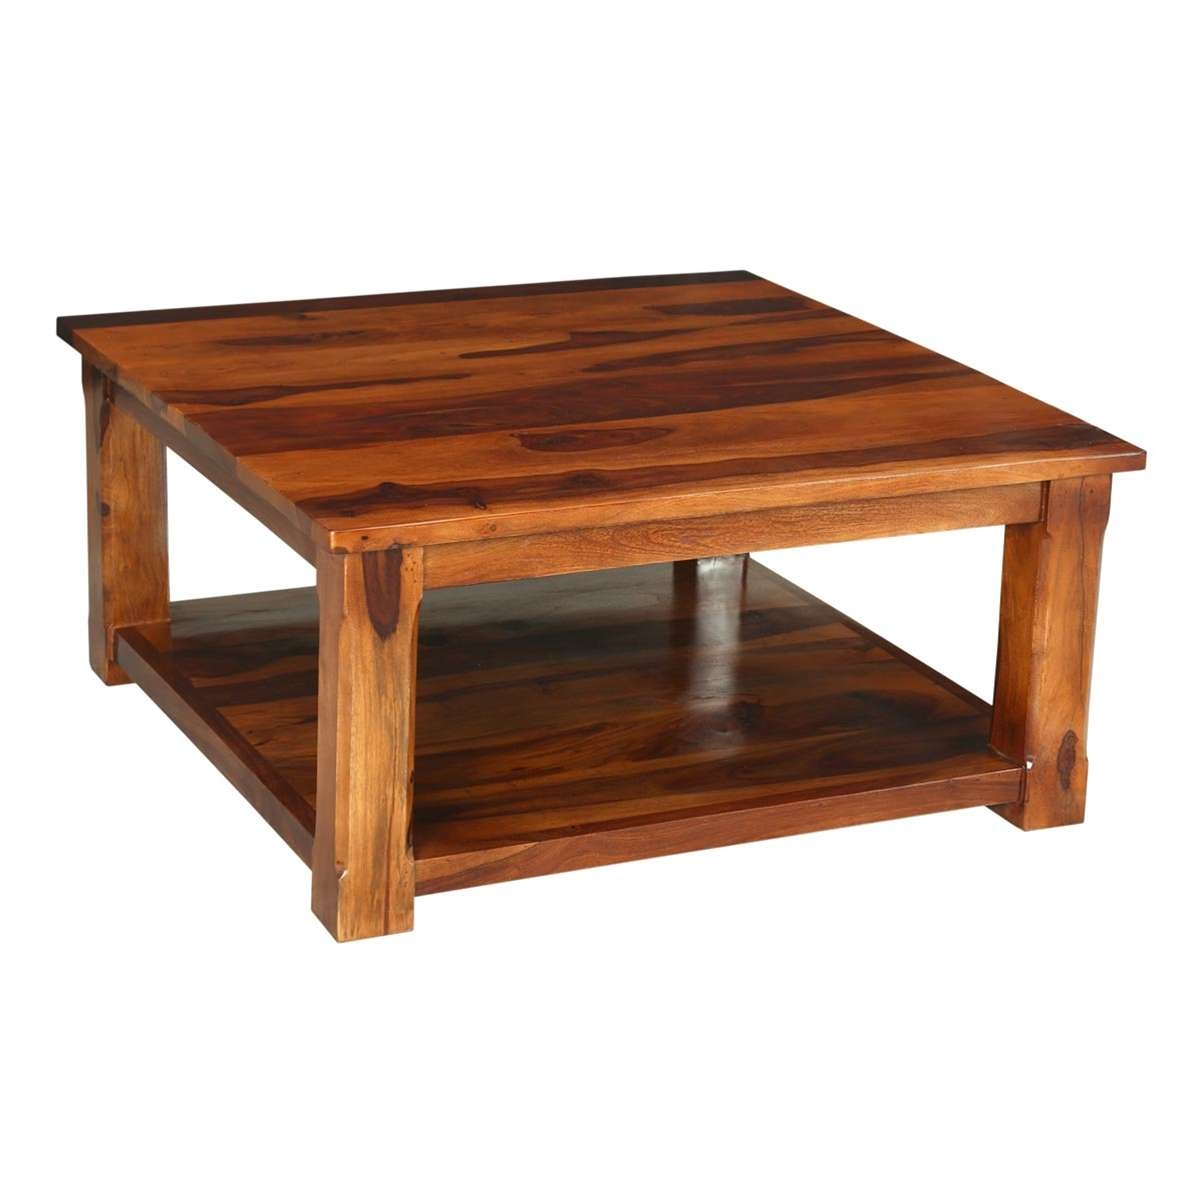 Santa Fe Easy Solid Wood Single Shelf Tv Cabinet Coffee Table For Widely Used Rustic Coffee Table And Tv Stand (View 10 of 20)